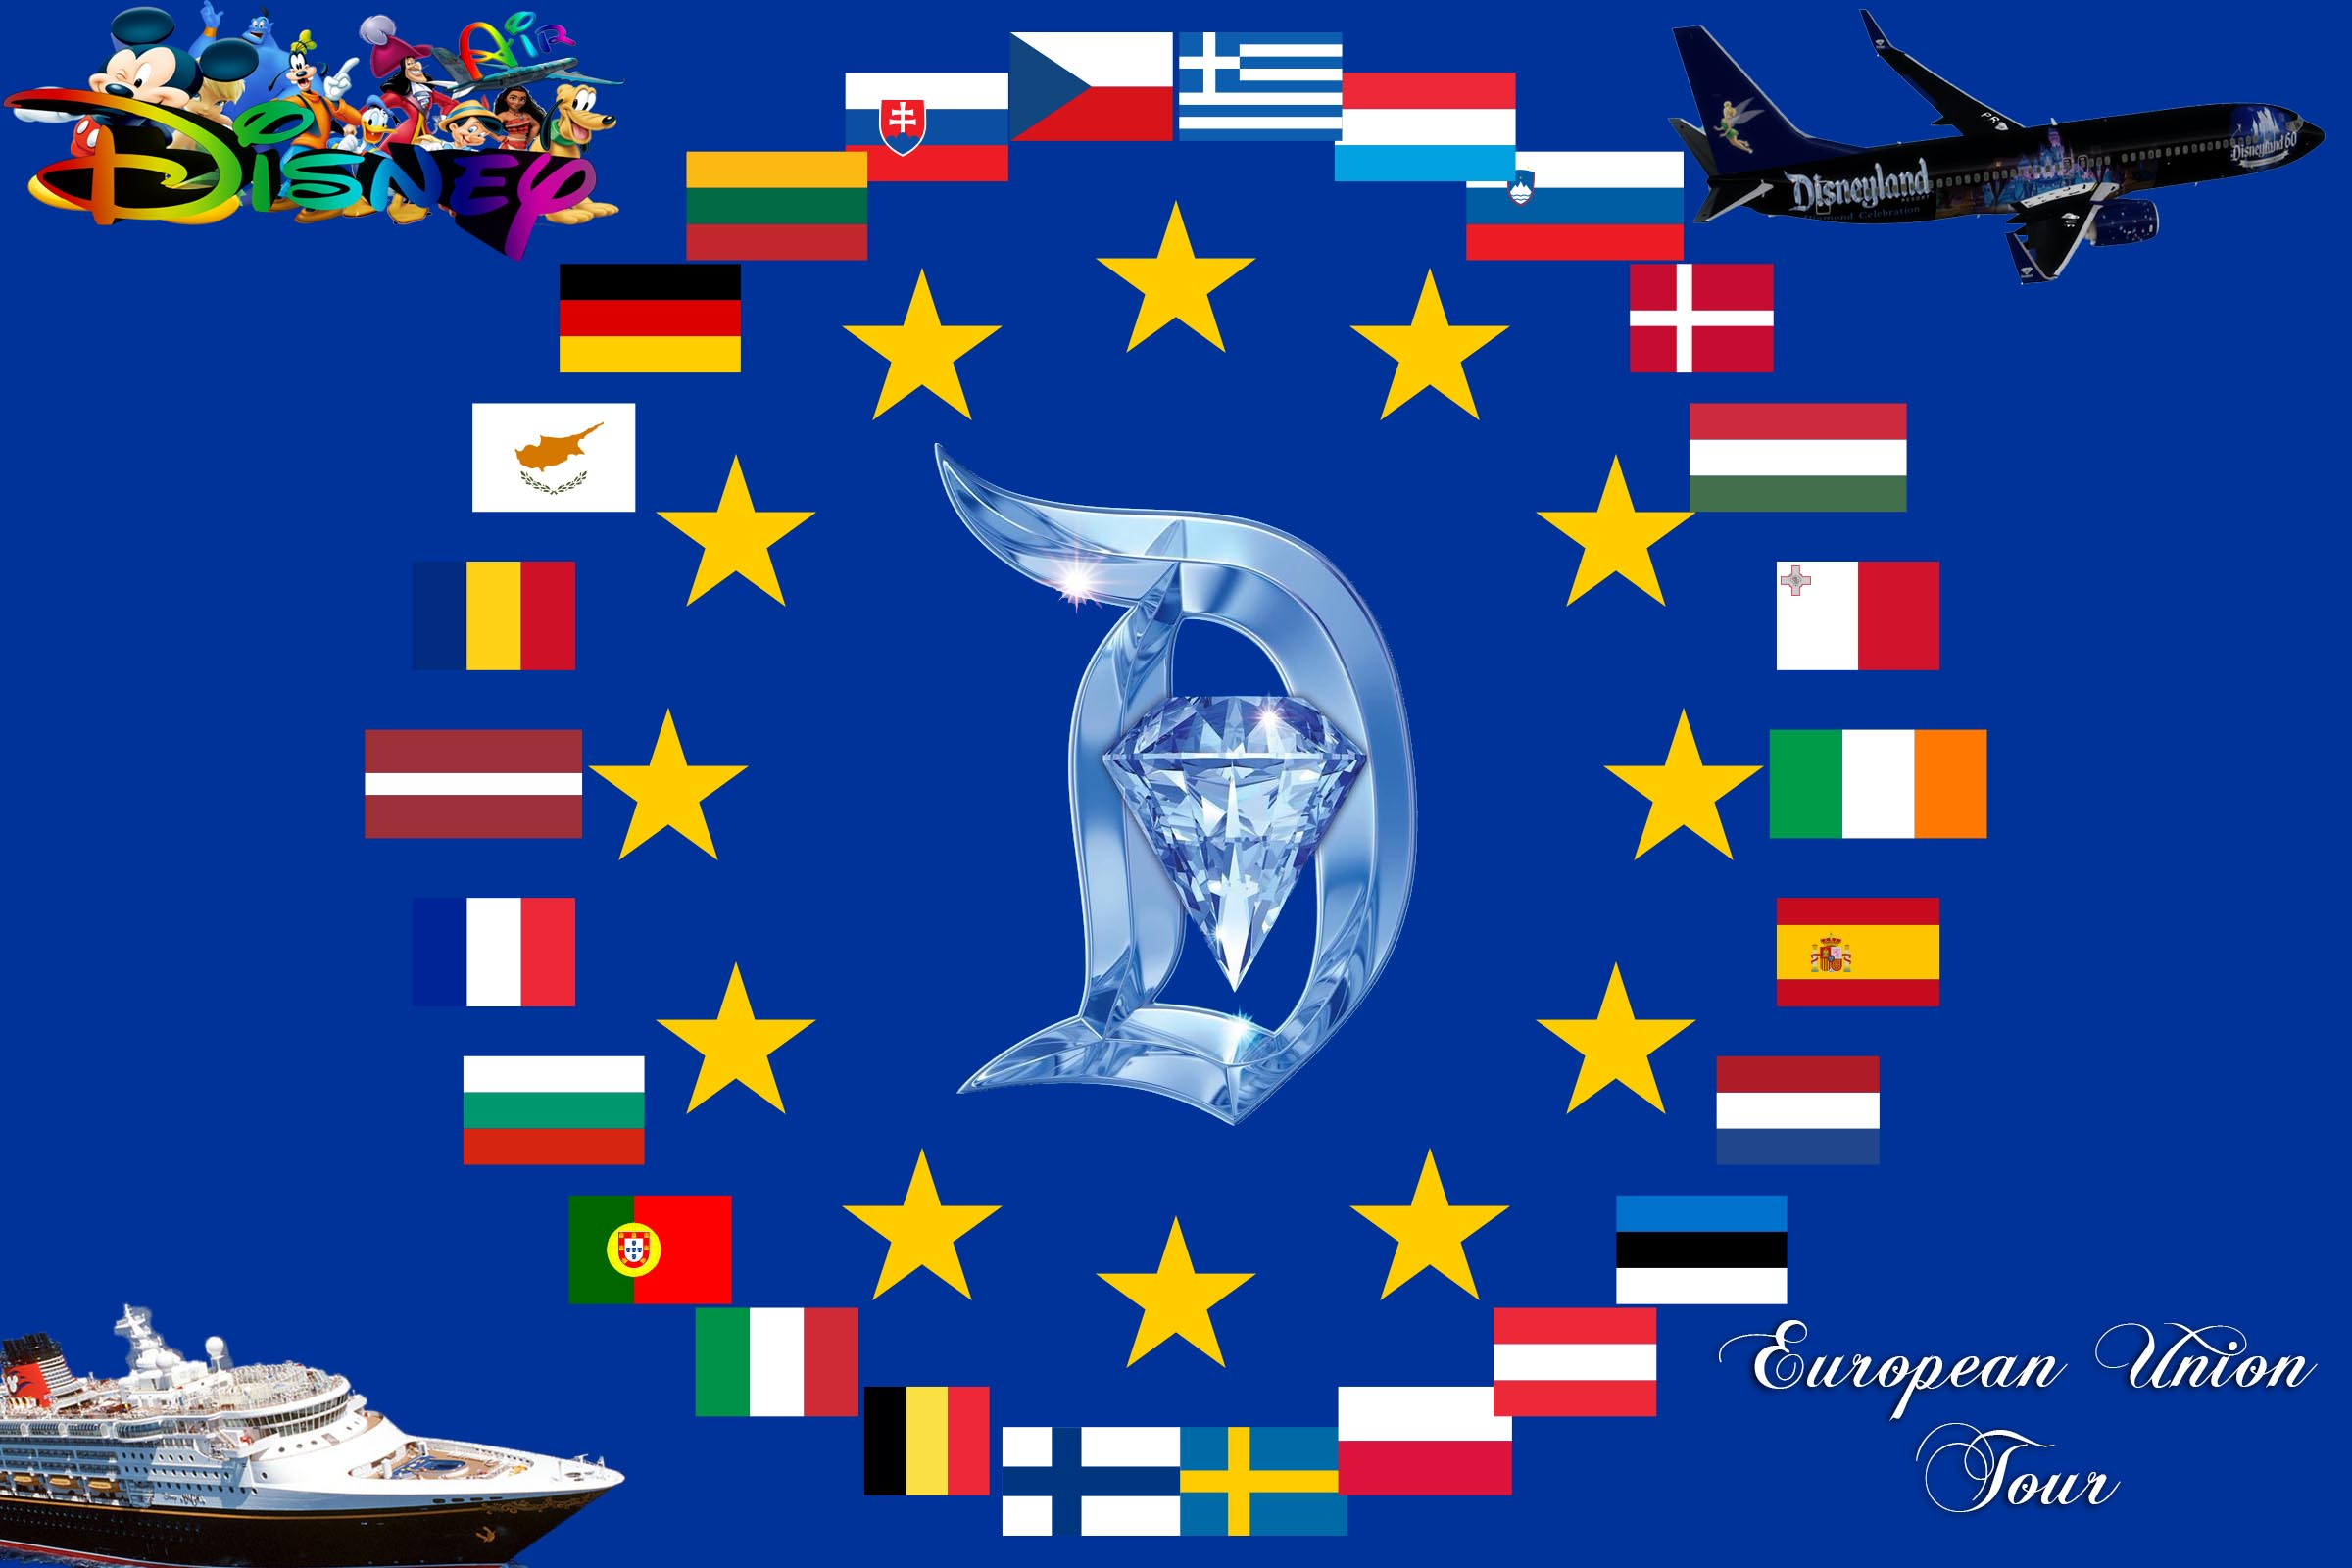 Disney Air's European Union Tour